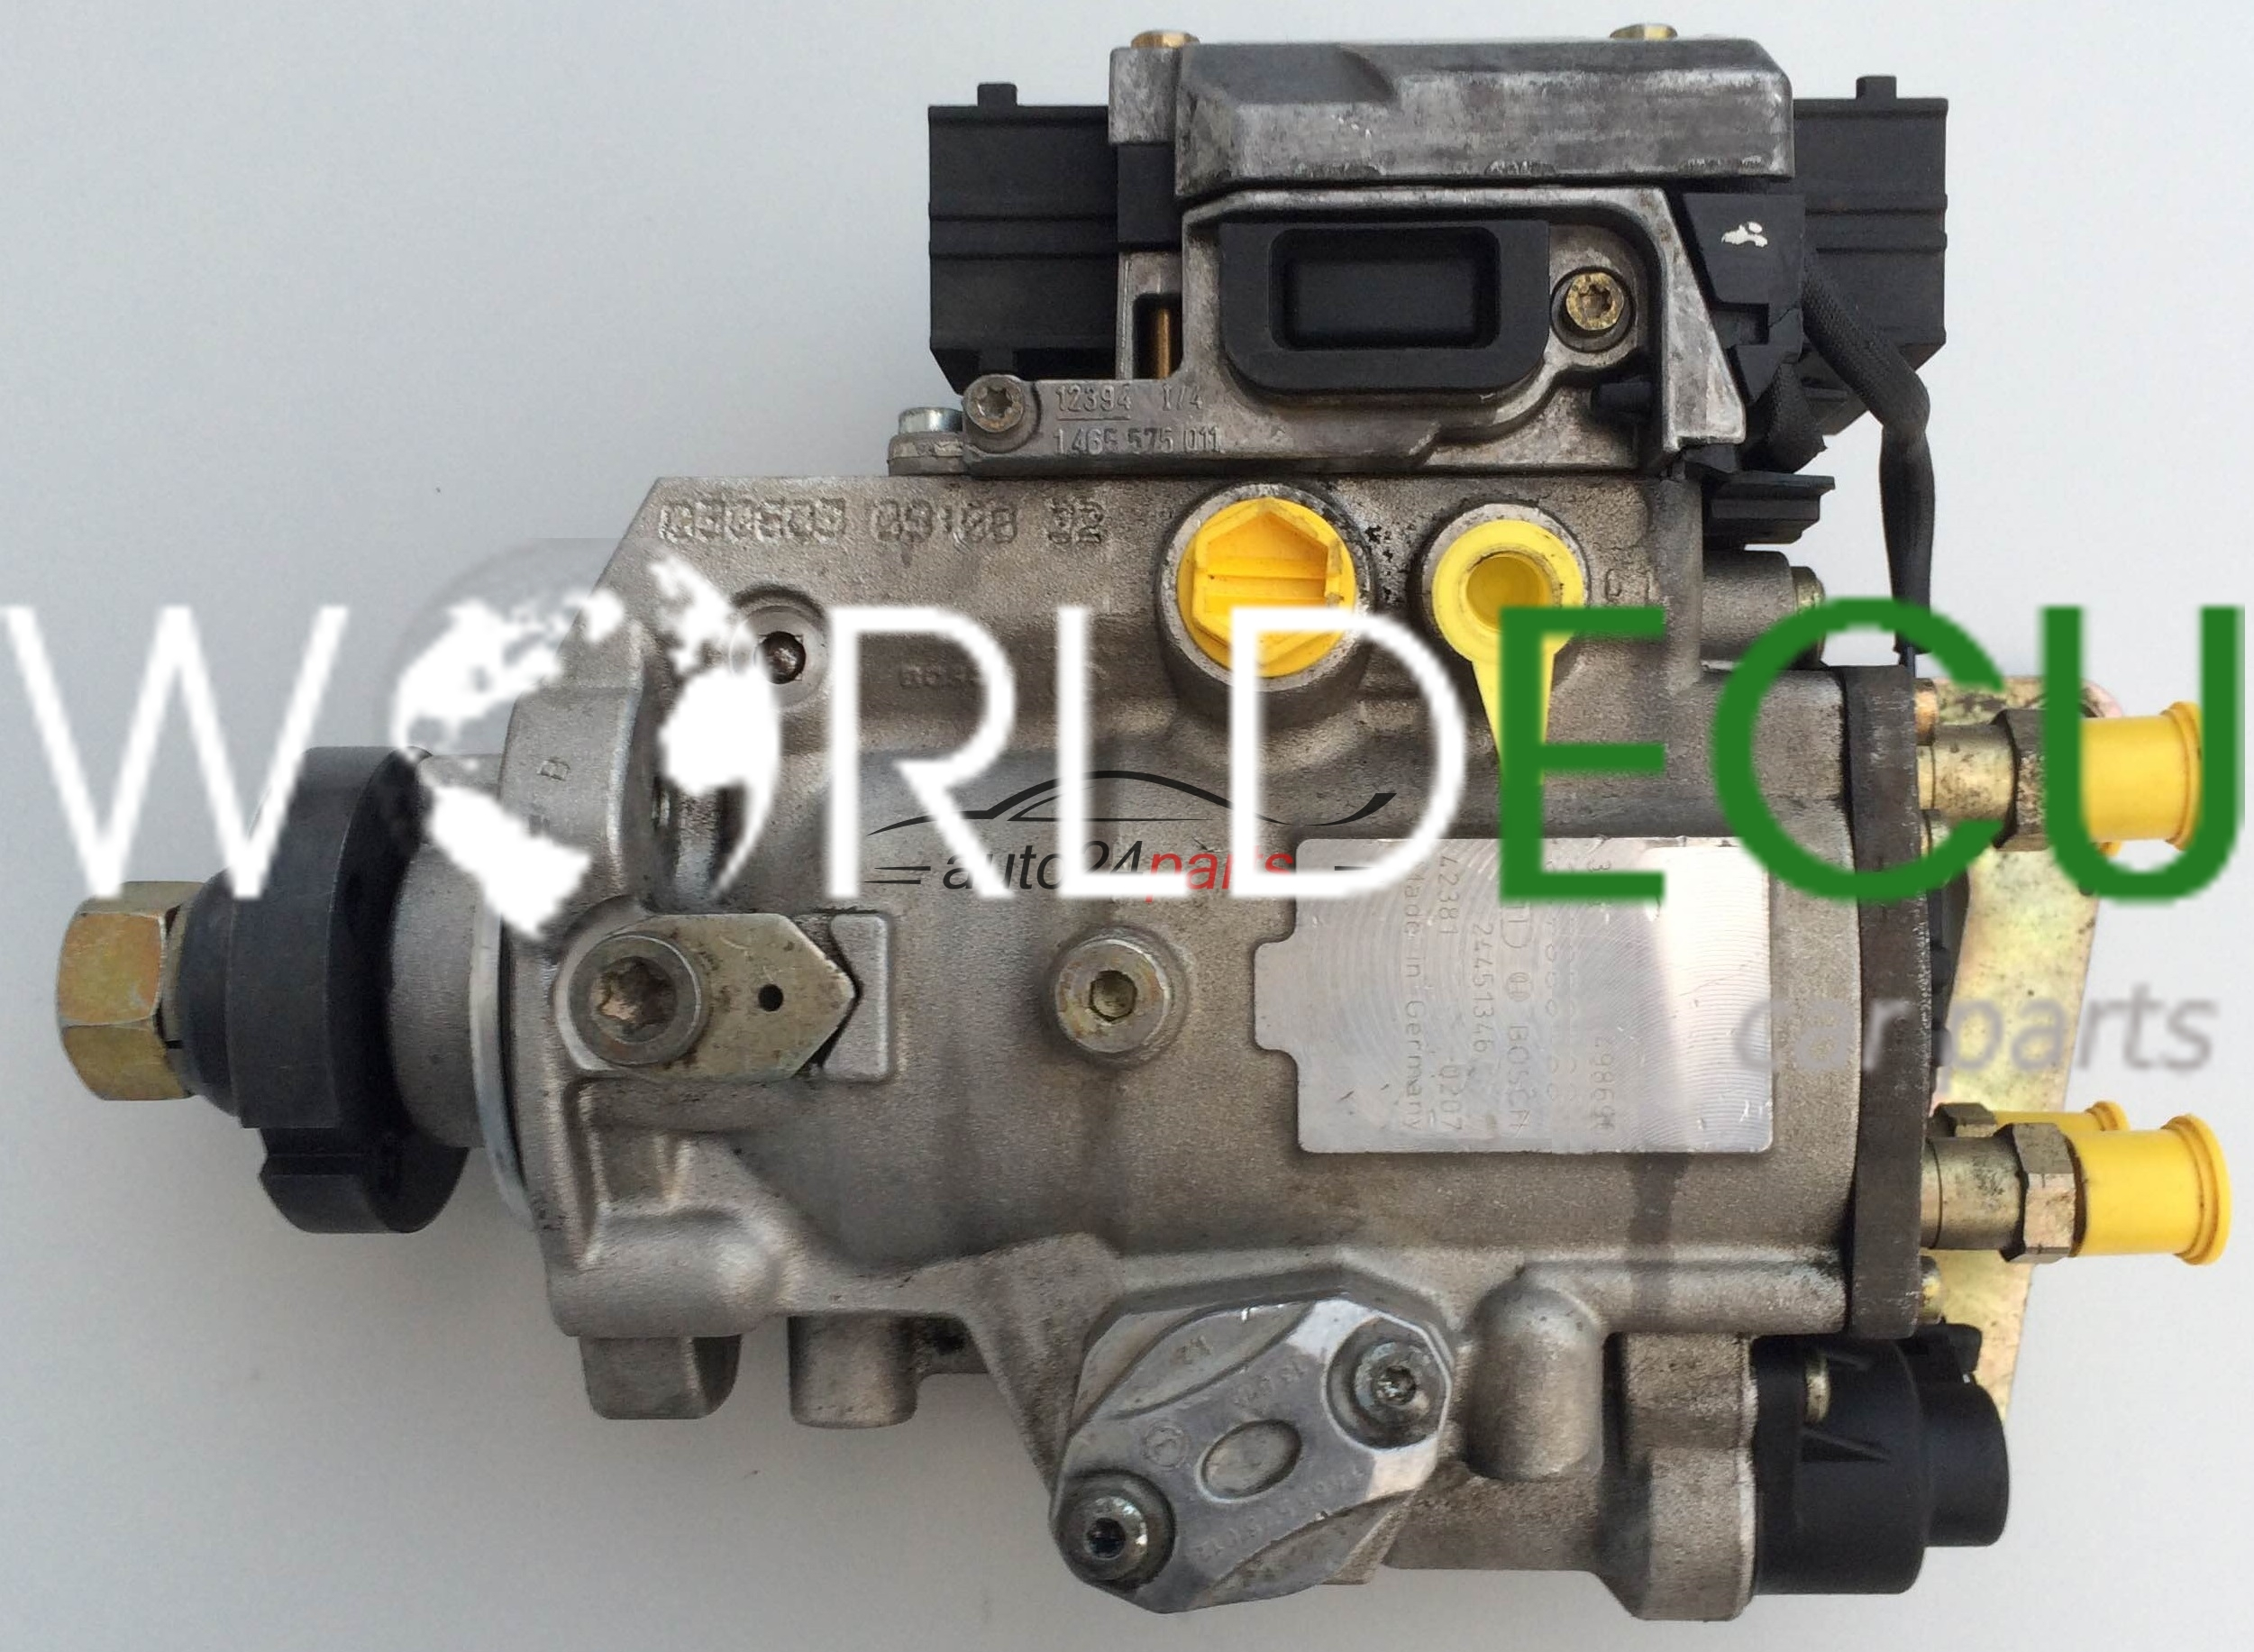 PUMP INJECTION PSG16 2 2 BOSCH 0470504202 OPEL VECTRA SIGNUM 93172230,  5810043, 1590050, 24451343, 93172233, 5819046, 0 470 504 202, 0 986 444 028